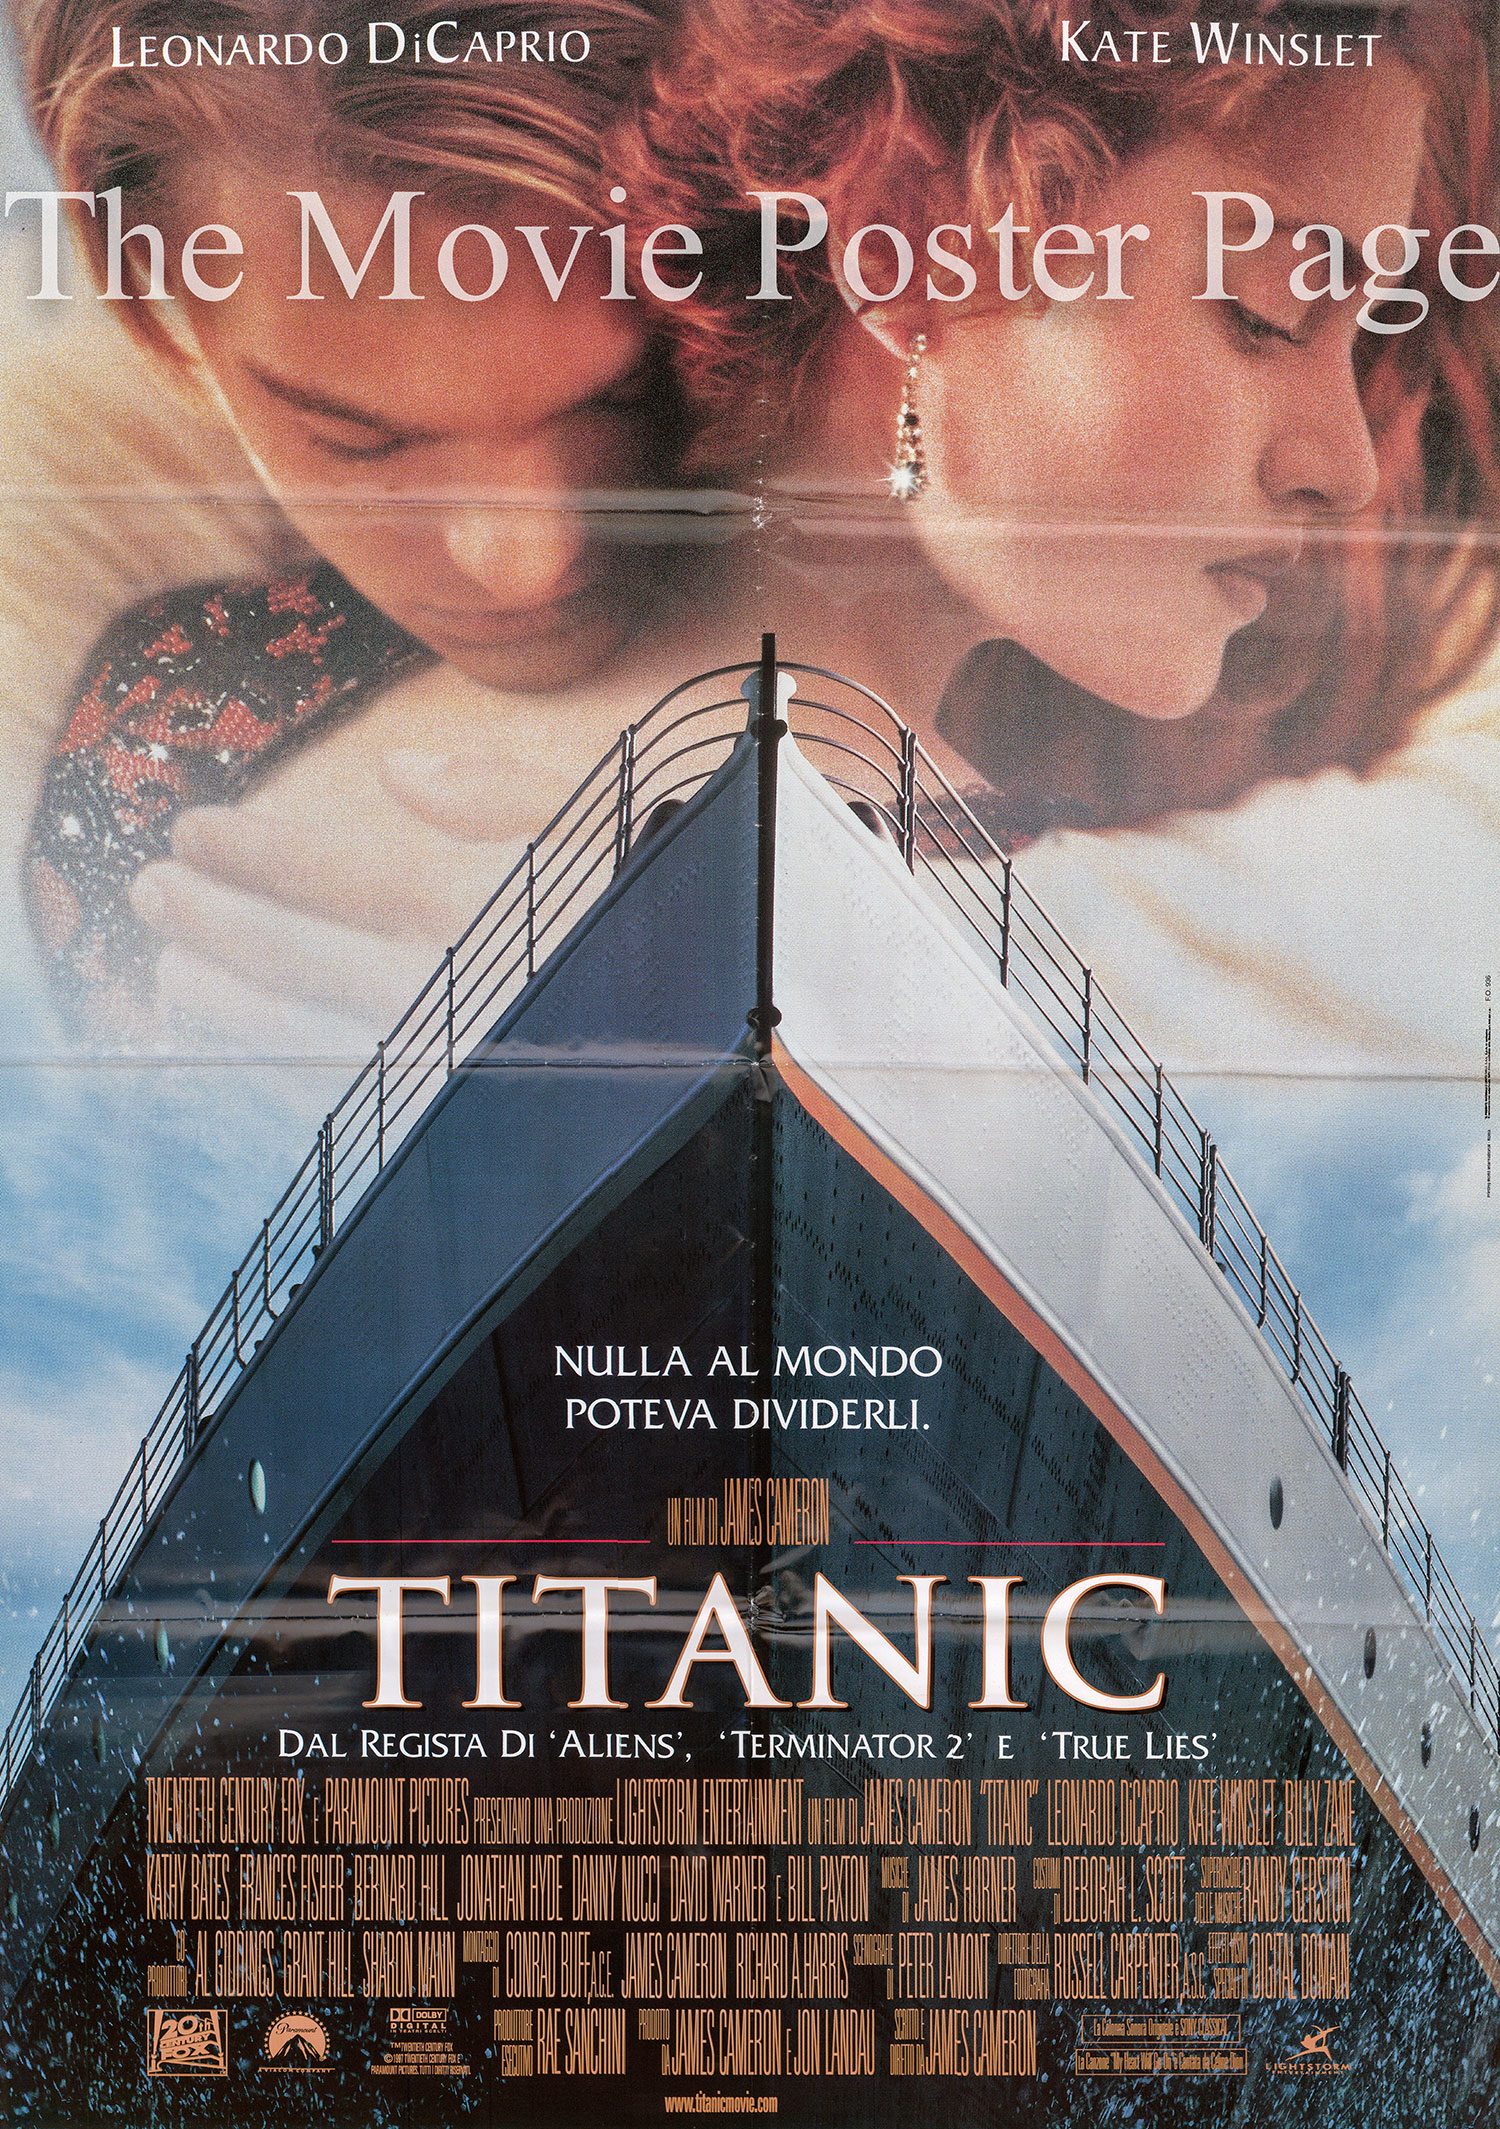 Pictured is an Italian two-sheet promotional poster for the 1997 James Cameron film Titanic starring Leonardo DiCaprio.